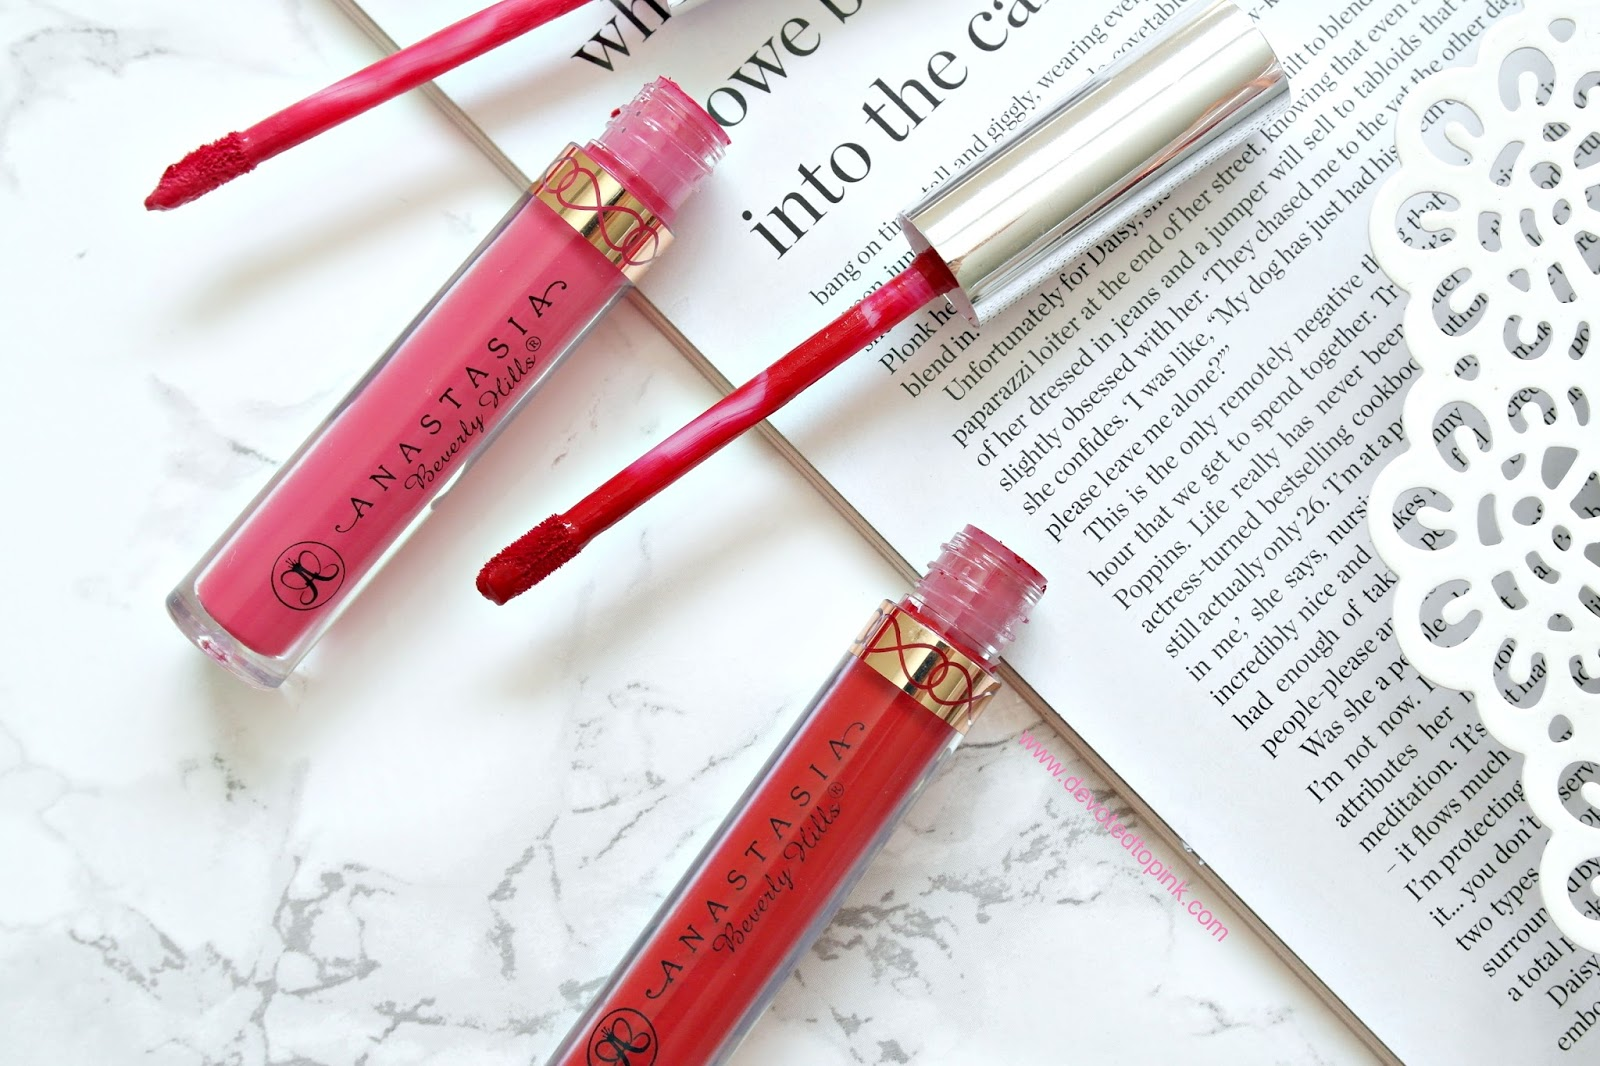 Anastasia Beverly Hills, liquid lipstick, carina, american doll, review, swatches